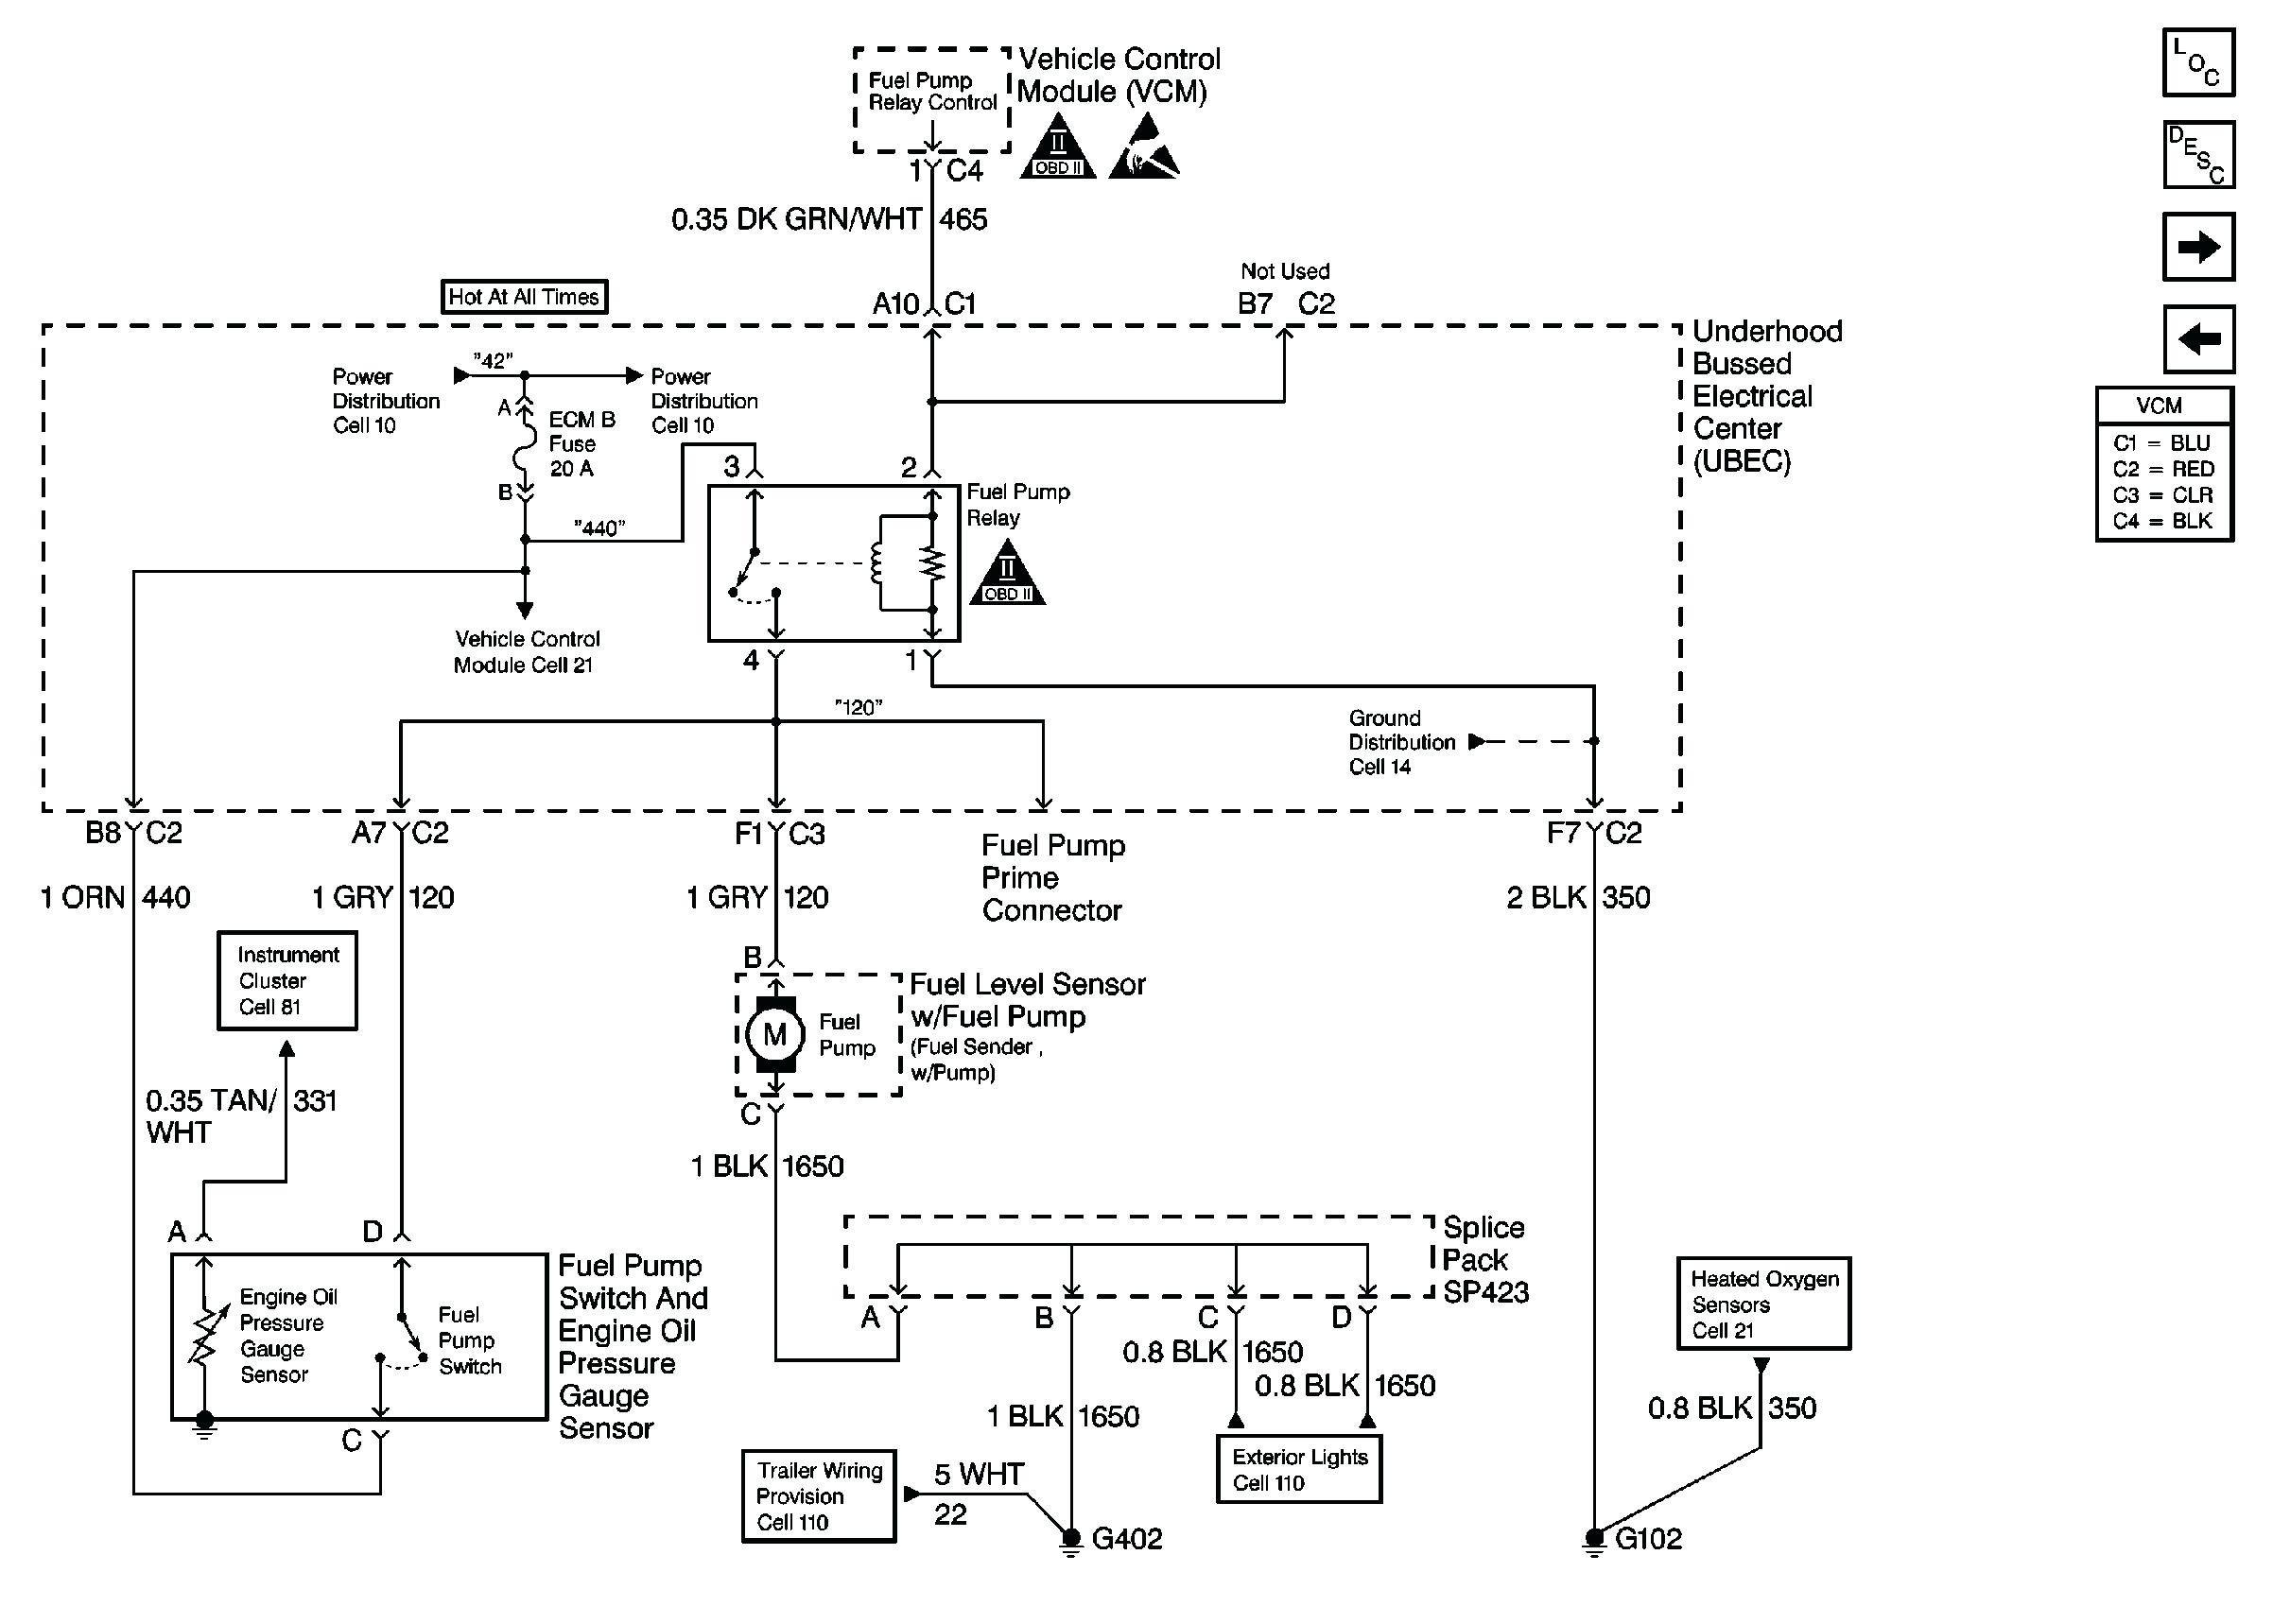 Safari Fuel Pump Wiring Harness Diagram 1993 - Wiring Diagram Data - Fuel Pump Wiring Harness Diagram